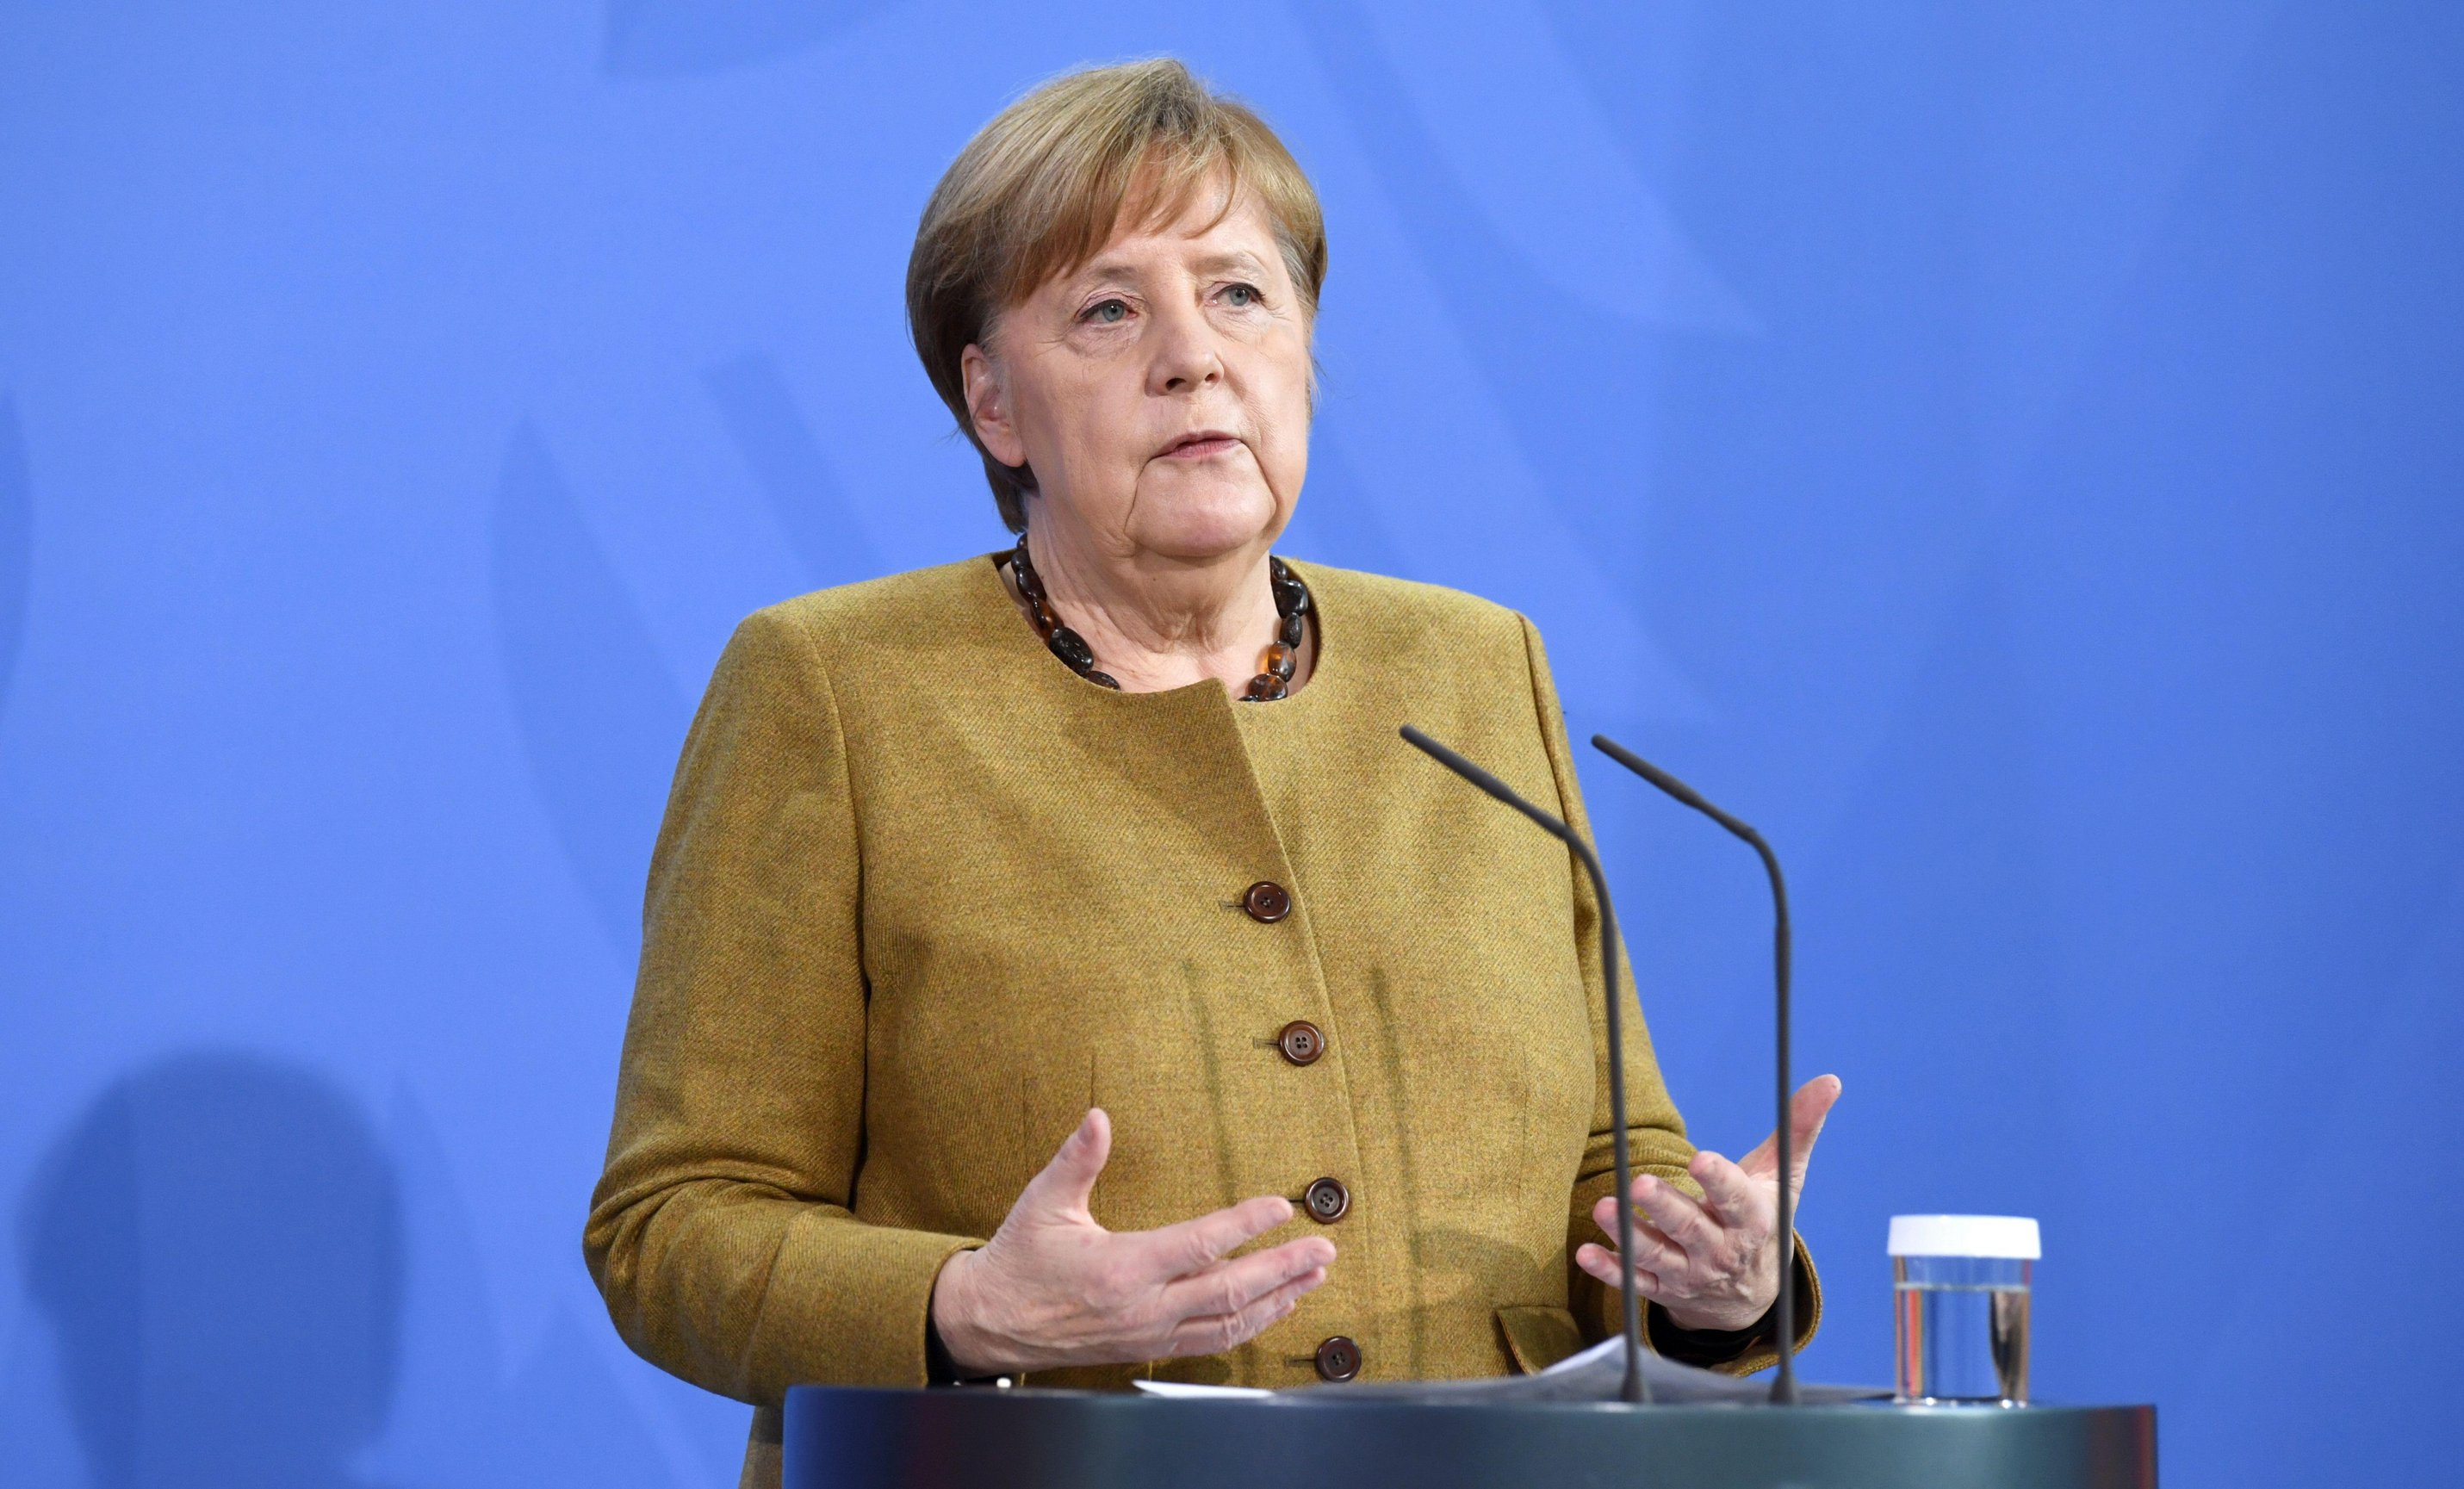 Many in Germany don't want the Oxford jab after it was criticised by politicians including Angela Merkel